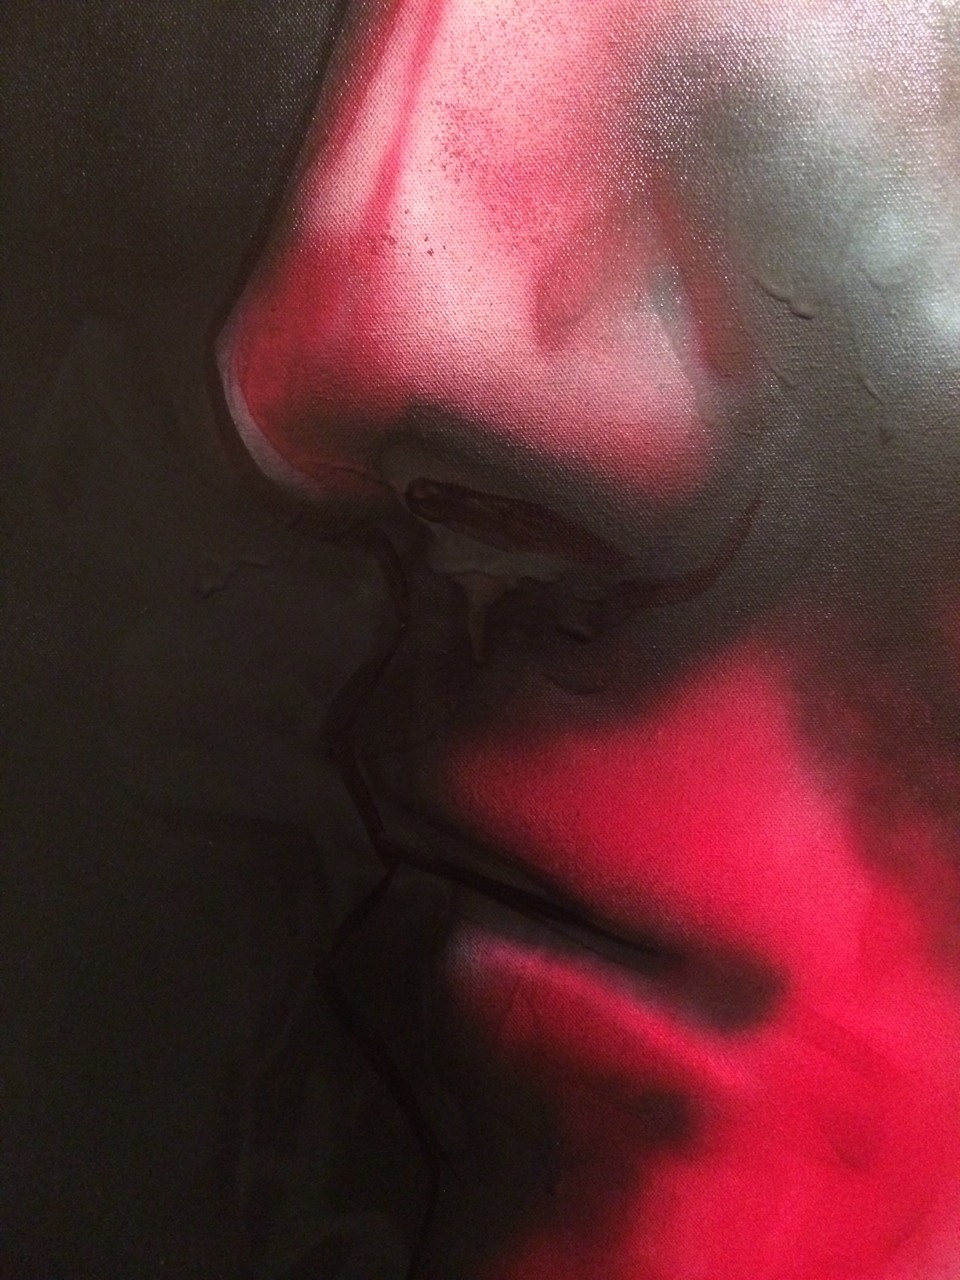 Close up detail on my spray paint work. I like how strong the lines are and the shading is pretty rough but somehow elegant.